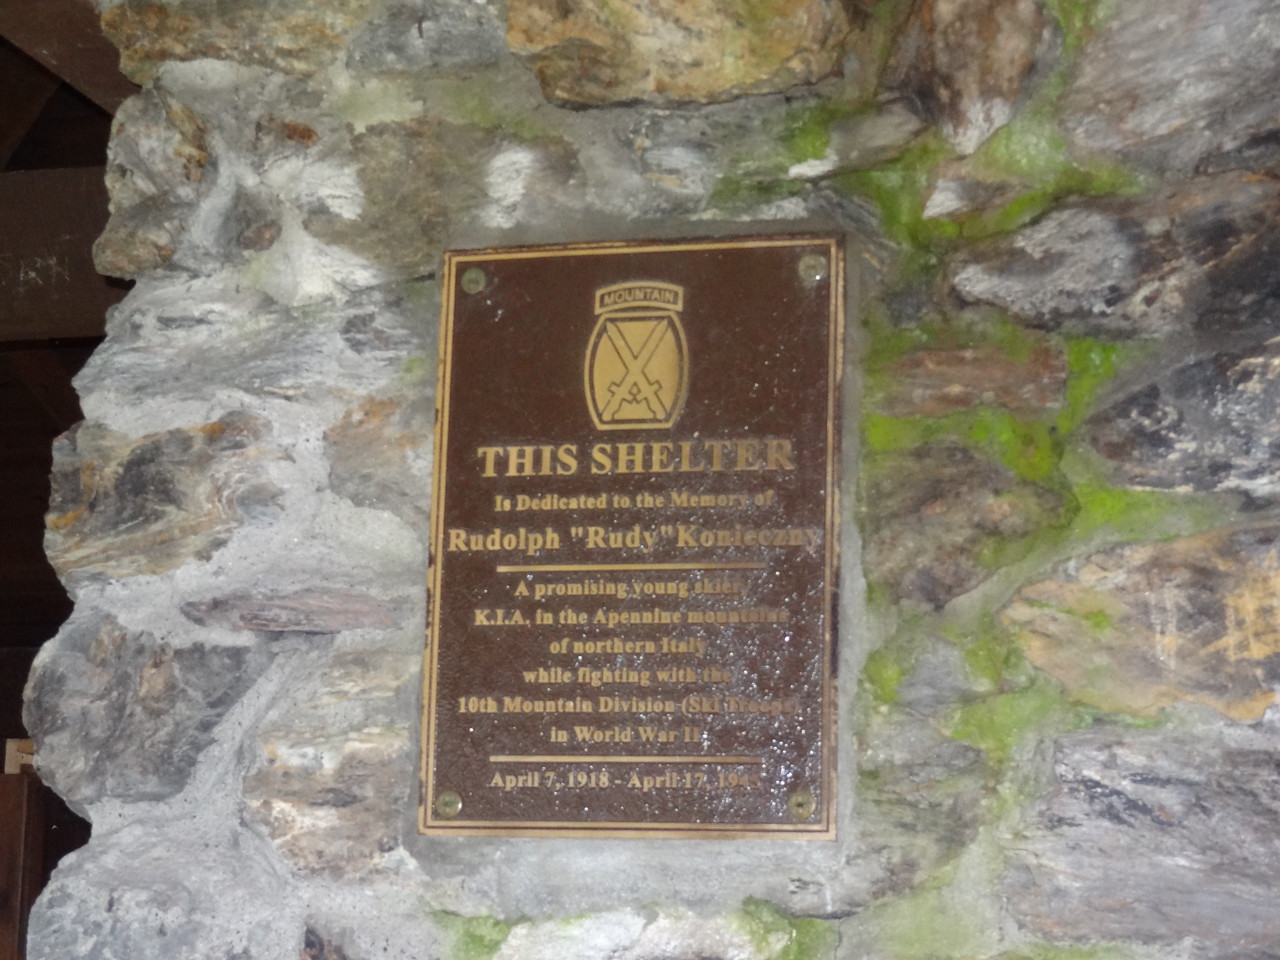 Today the Thunderbolt Ski Shelter exits as it did in the 1940's.  The fireplaces in the center of the building can still be used to warm frozen toes before a run down the Thunderbolt.  In 1999,  the shelter was dedicated to Rudy Konieczny during a ceremony on the summit.  Rudy was Adams' most talented downhill skier.  He served with the 10th Mountain Division during WWII and was killed in action in April of 1945.